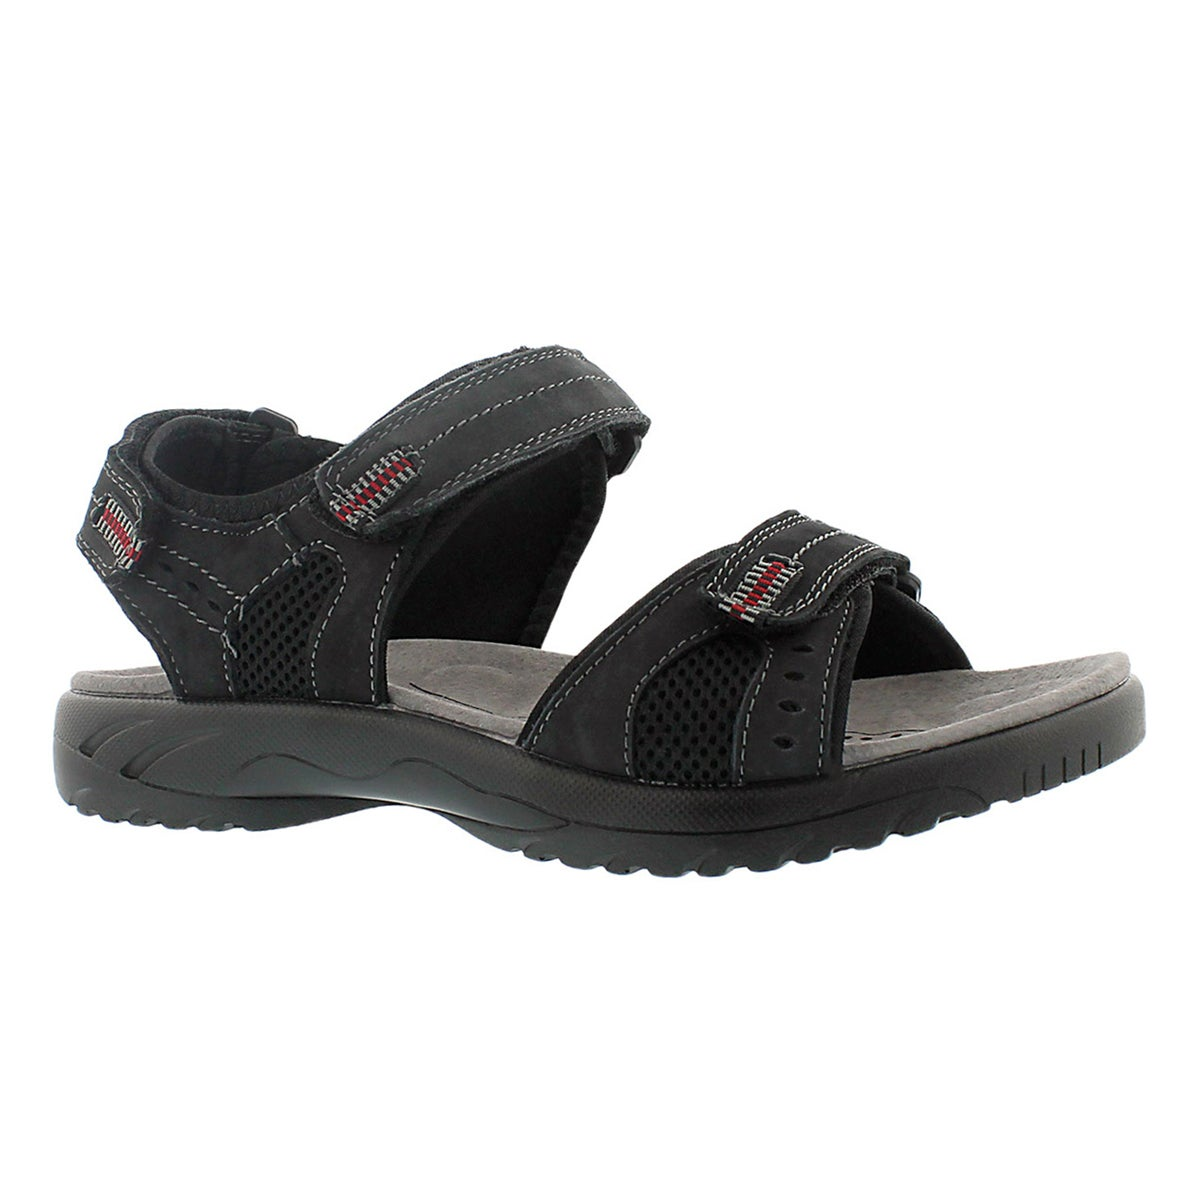 Men's KURT black 3 strap sport sandals